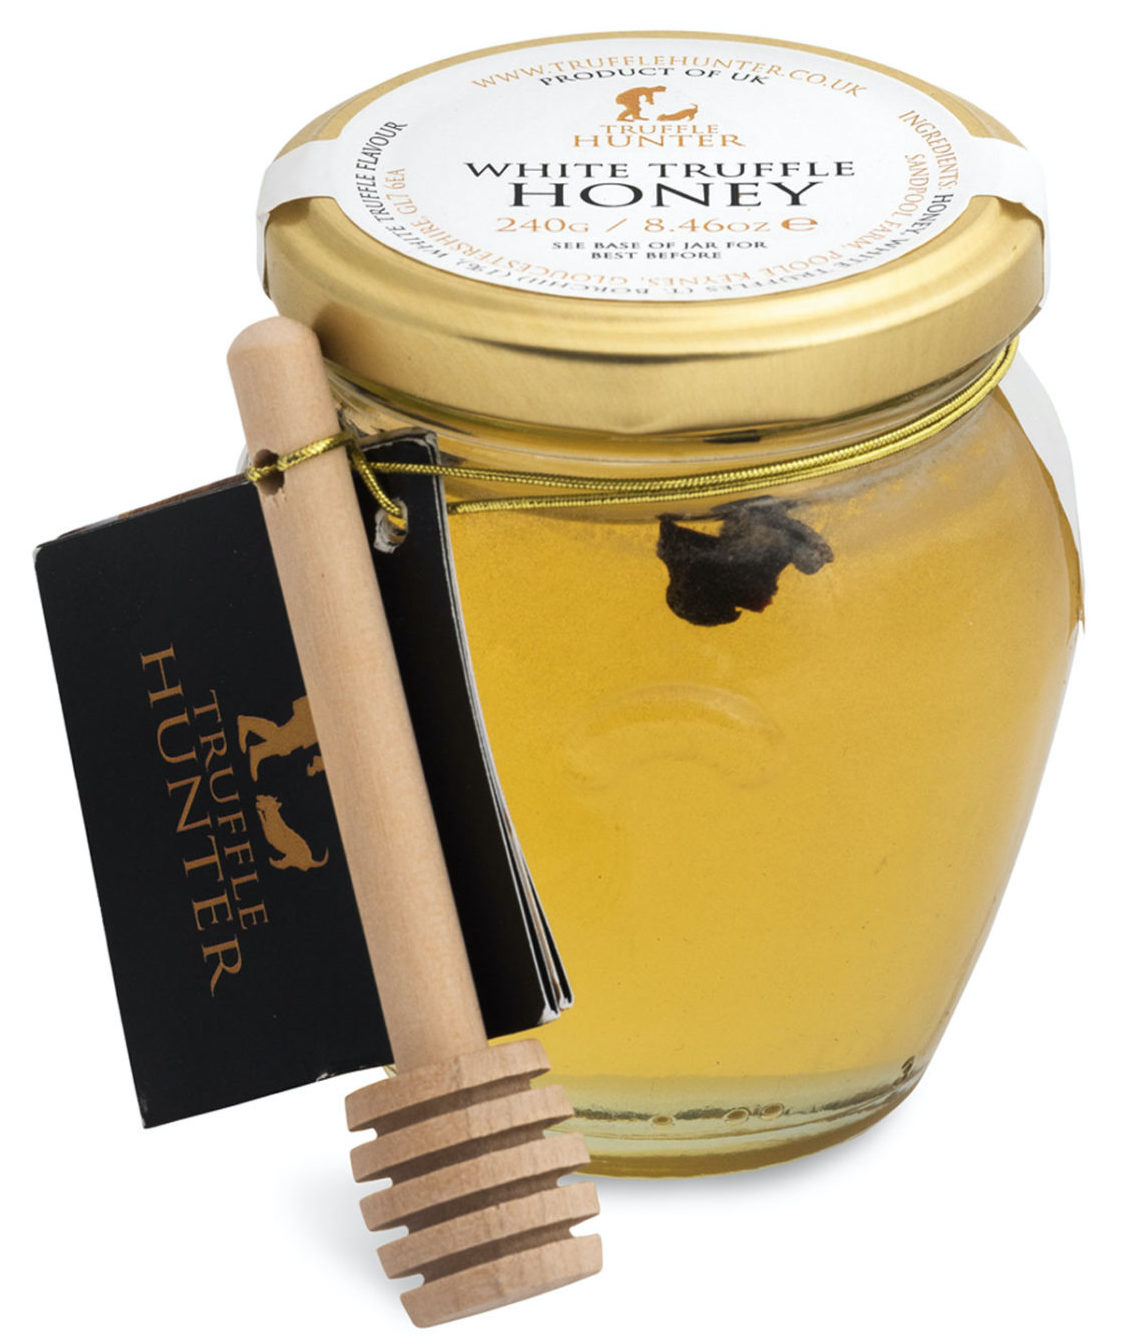 White Truffle Honey  240g